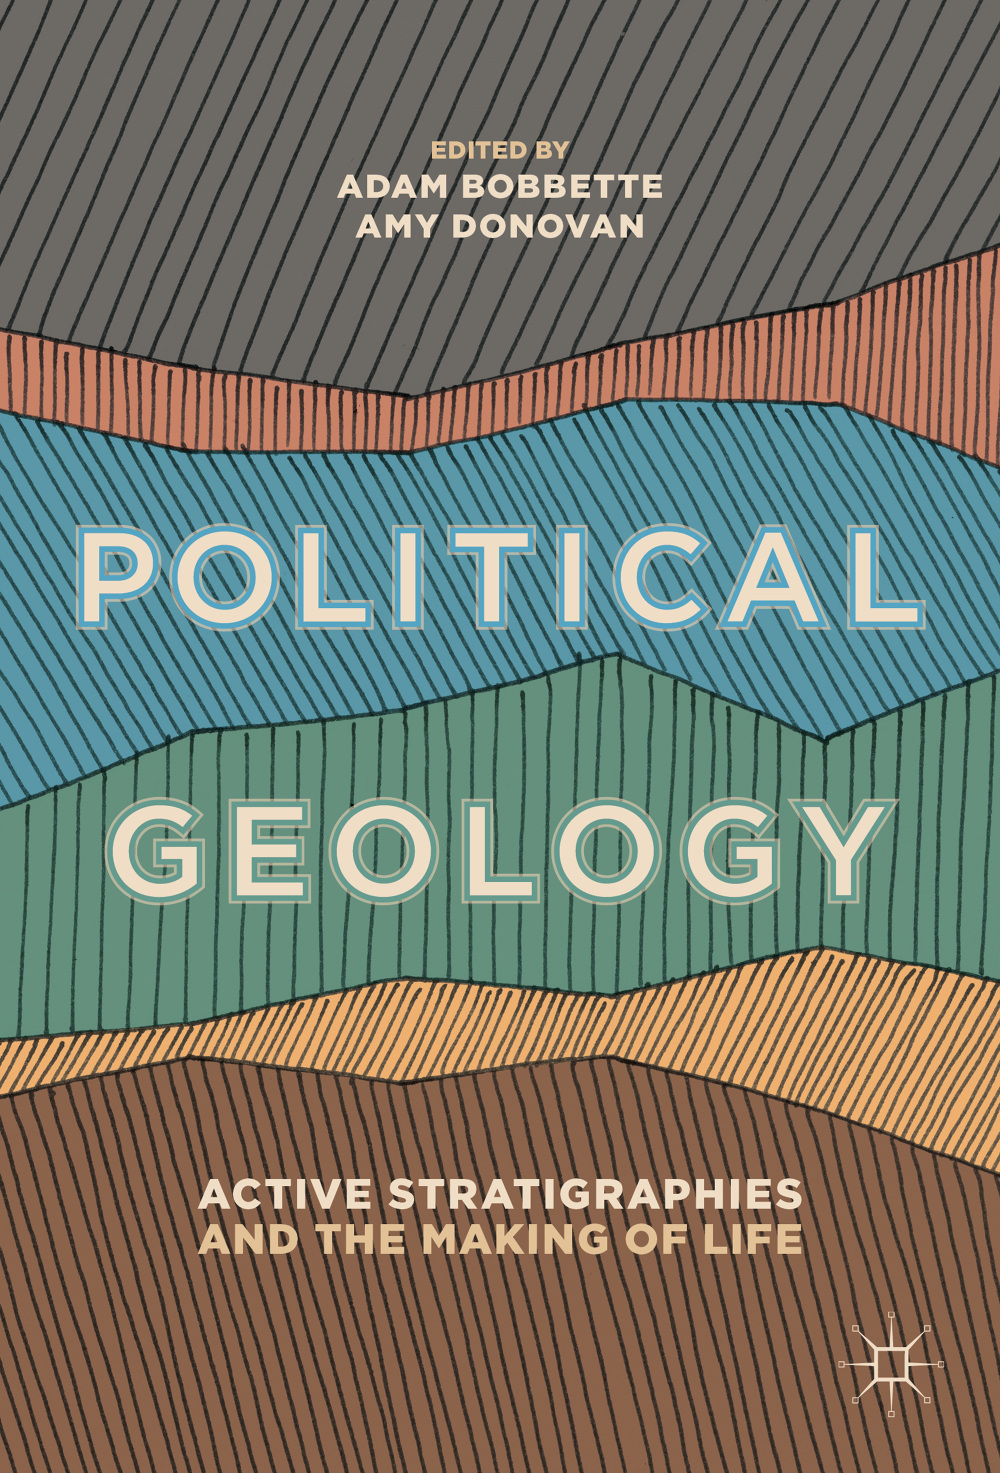 Image result for Political Geology Active Stratigraphies and the Making of Life